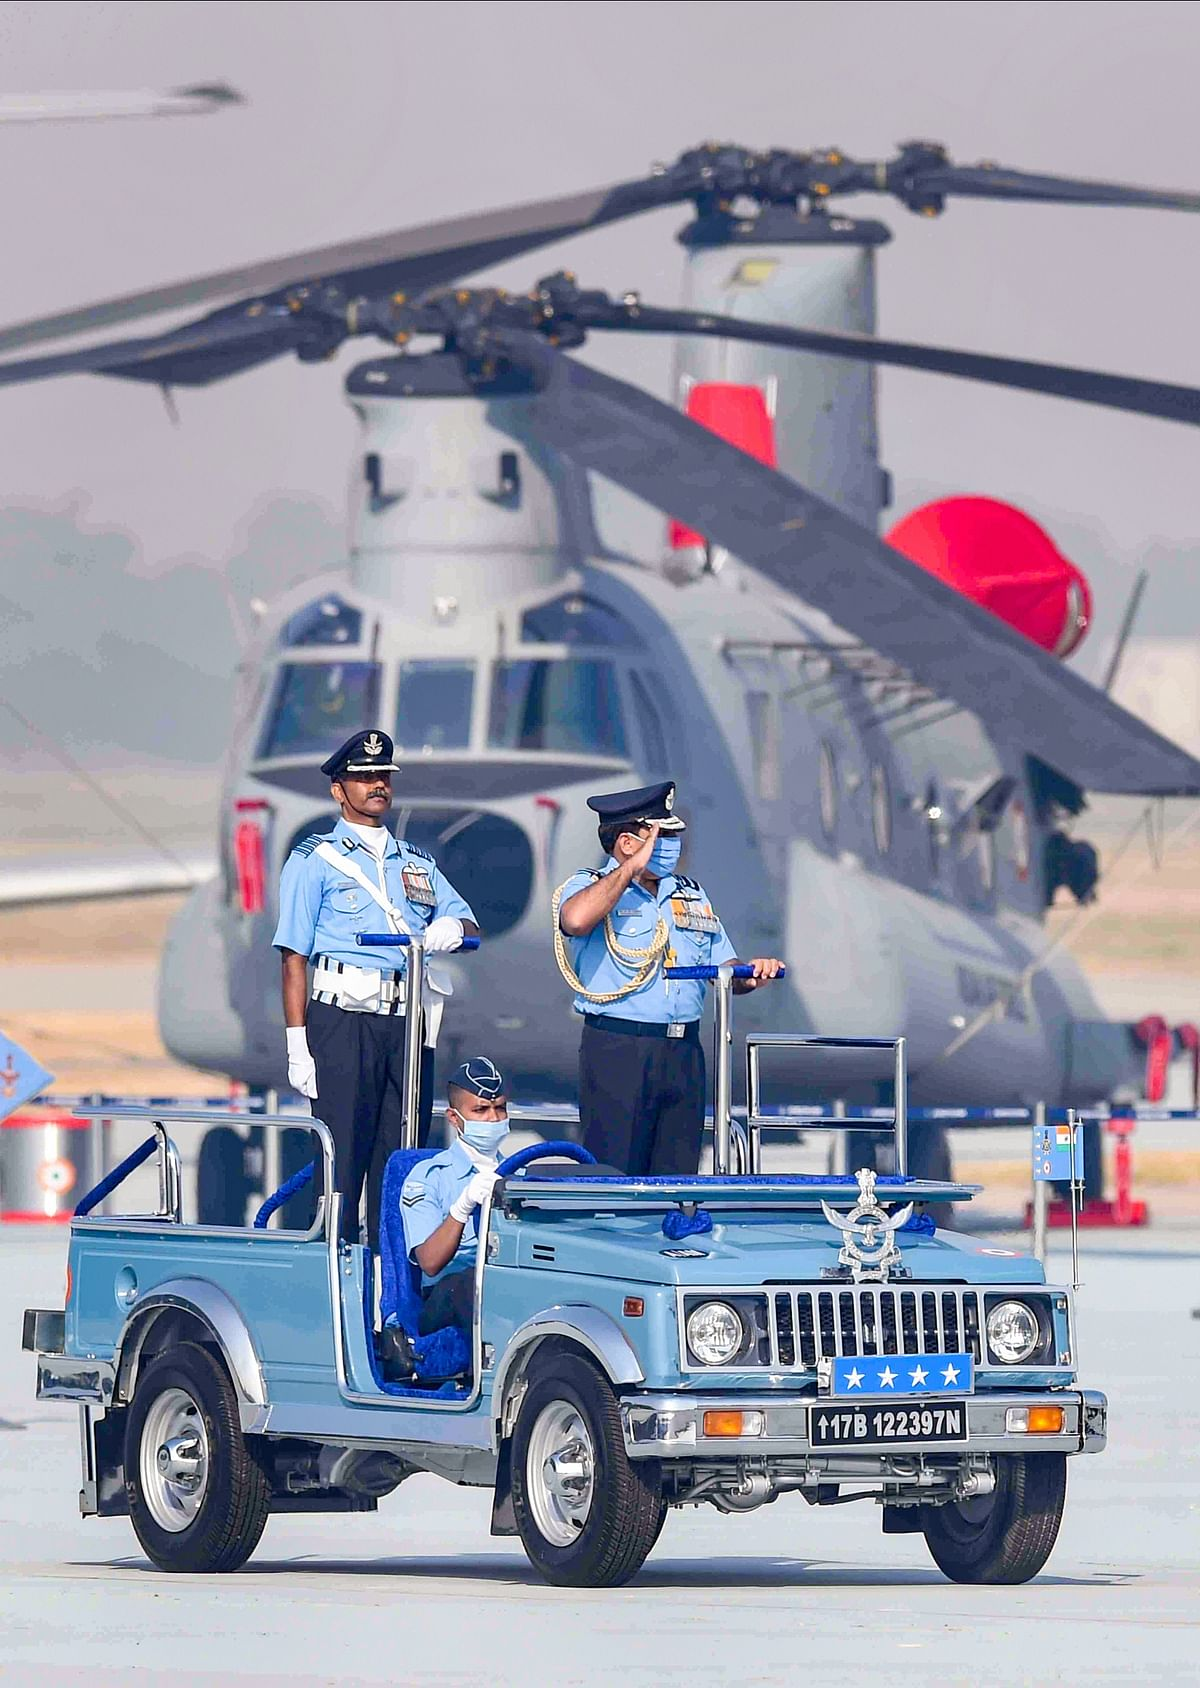 IAF Chief Air Chief Marshal RKS Bhadauria inspects a guard of honour during the 88th Air Force Day celebrations at Hindon airbase in Ghaziabad.